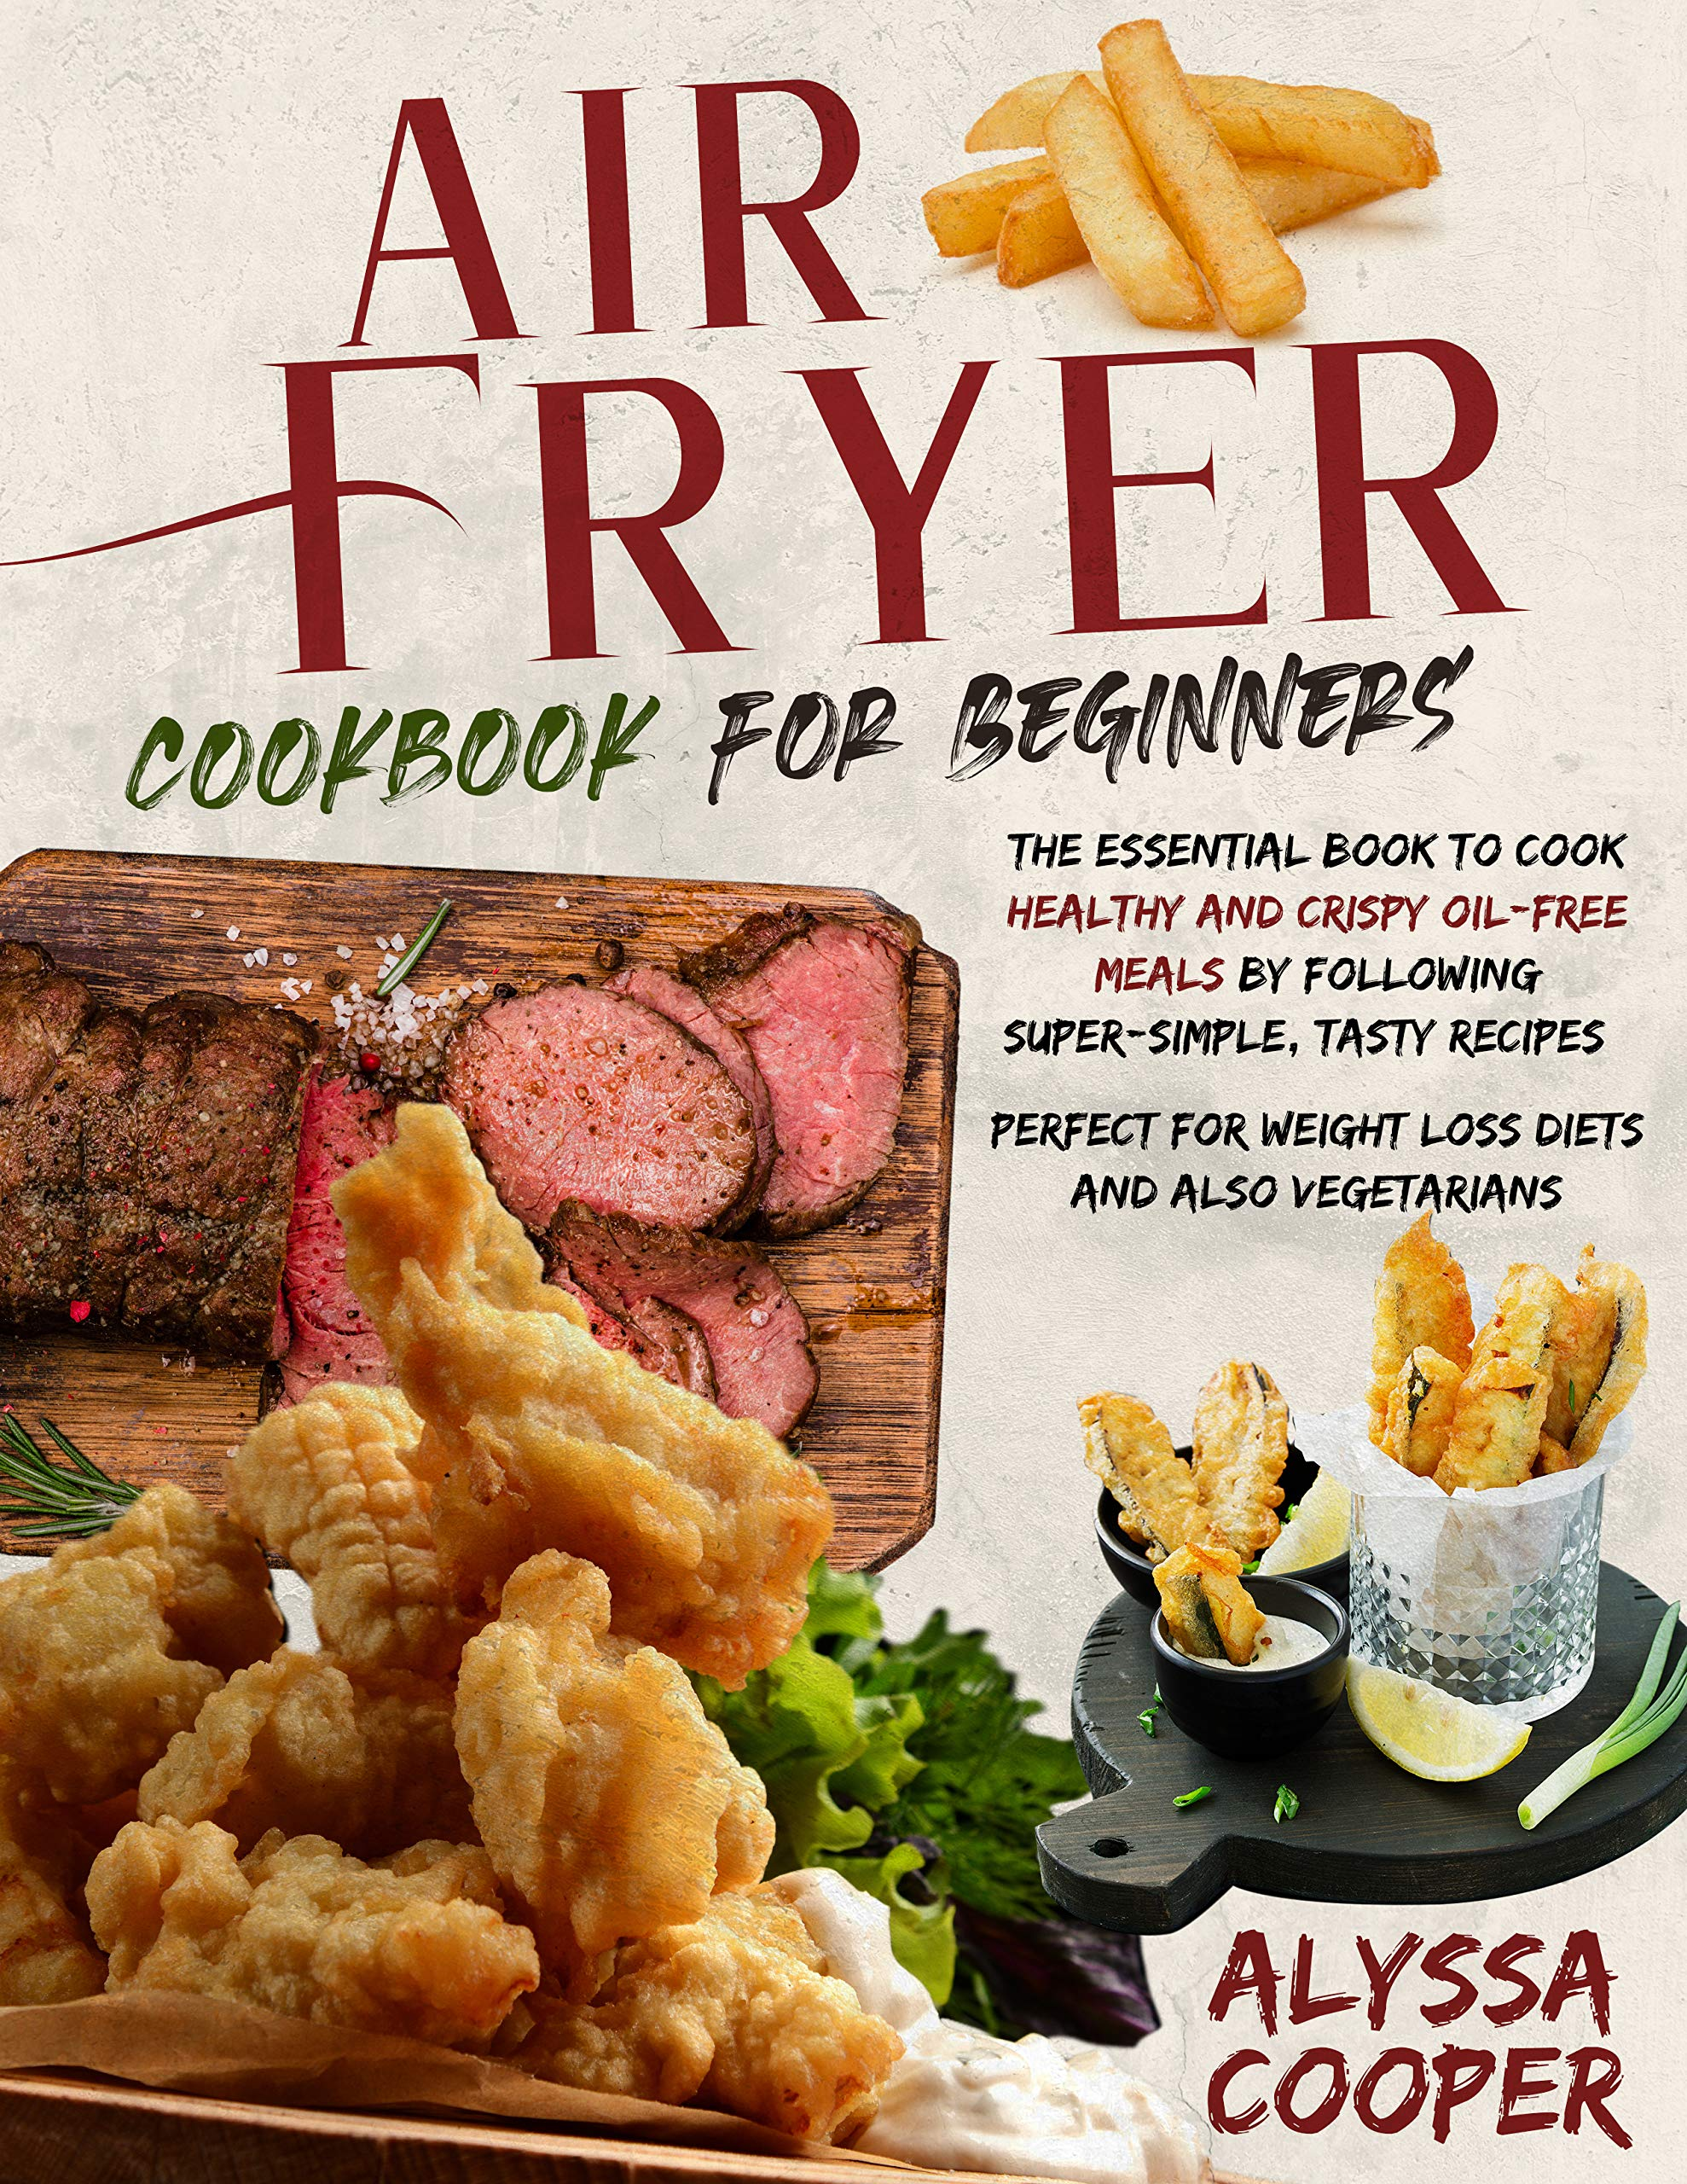 Air Fryer Cookbook for Beginners: The Essential Book To Cook Healthy And Crispy Oil-Free Meals By Following Super-Simple, Tasty Recipes | Perfect For Weight Loss Diets And Also Vegetarians